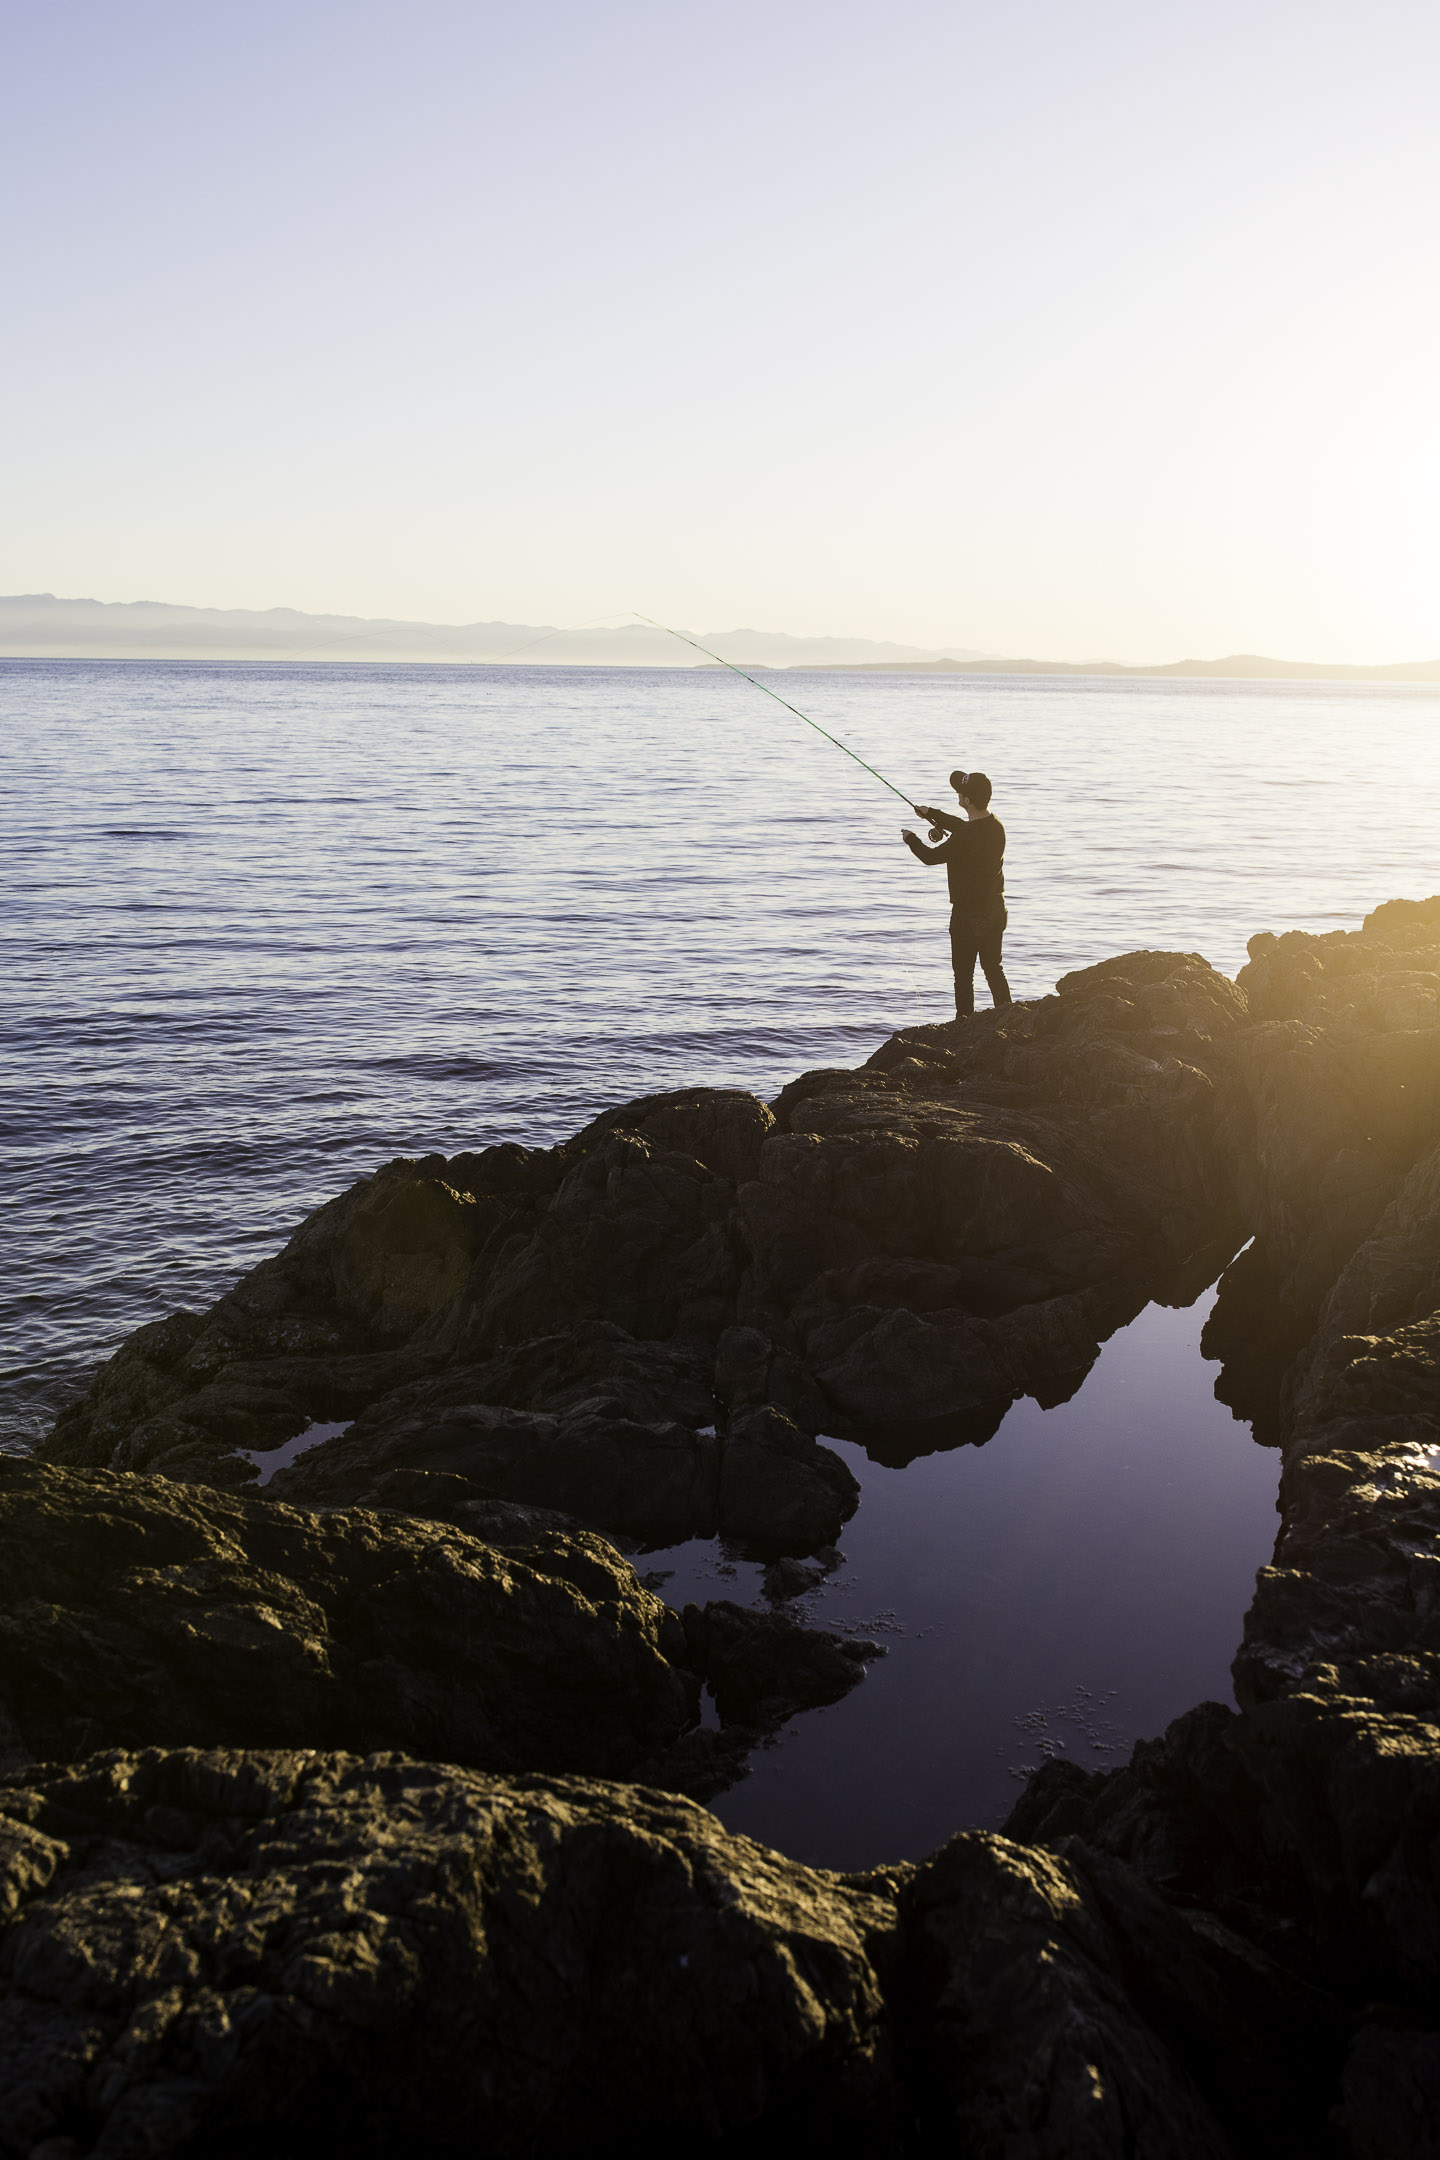 A fisherman at dusk on the Pacific Ocean. Shot in Victoria, BC, Canada